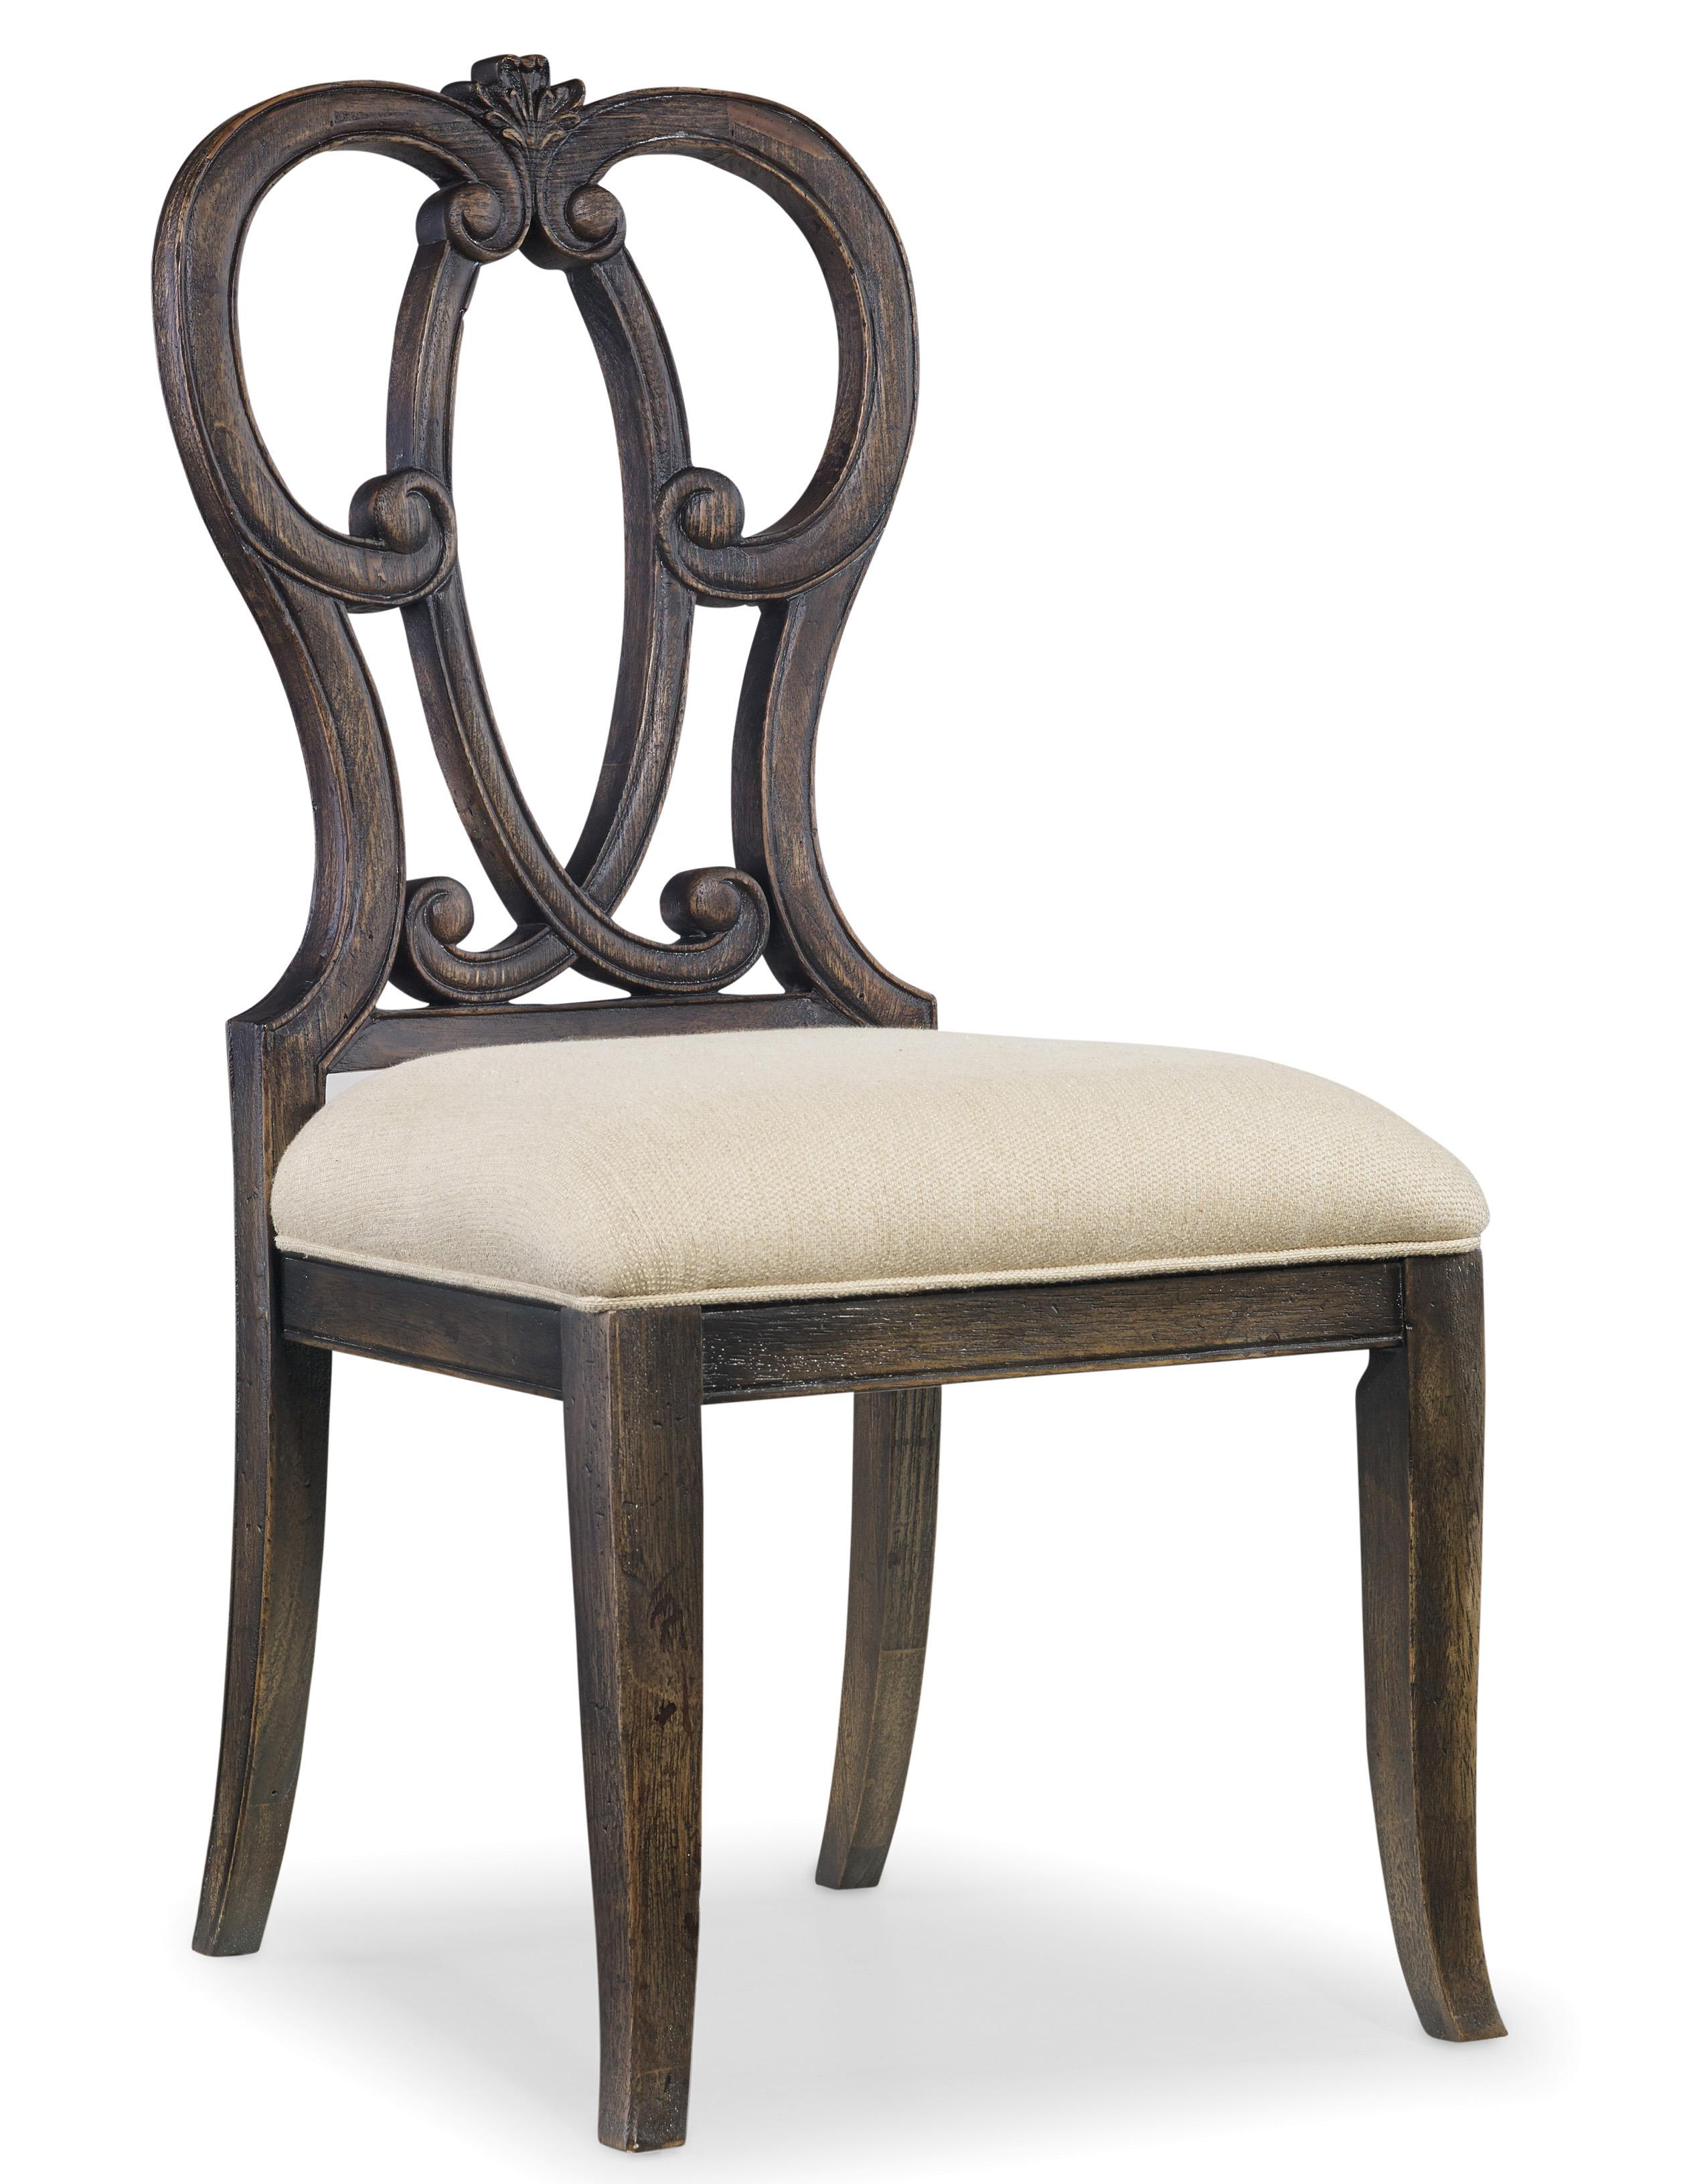 Hamilton Home DaValle Desk Chair - Item Number: 5165-30310